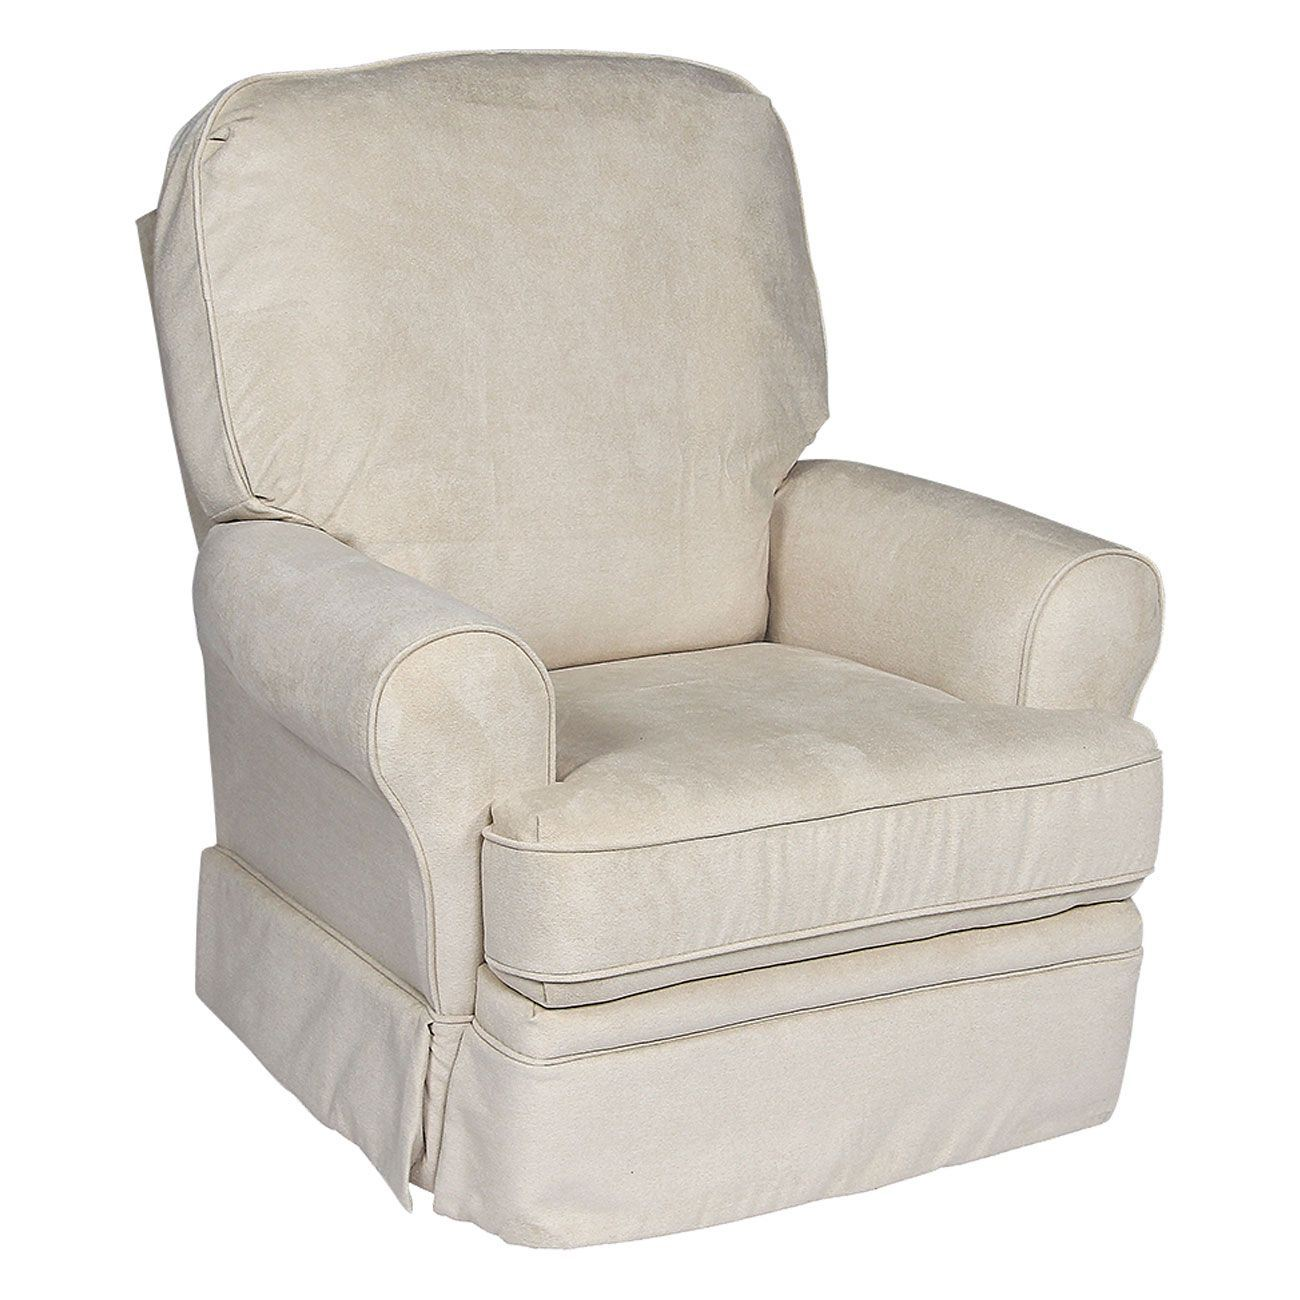 Picture of Juliana Blanco Swivel Glider Recliner